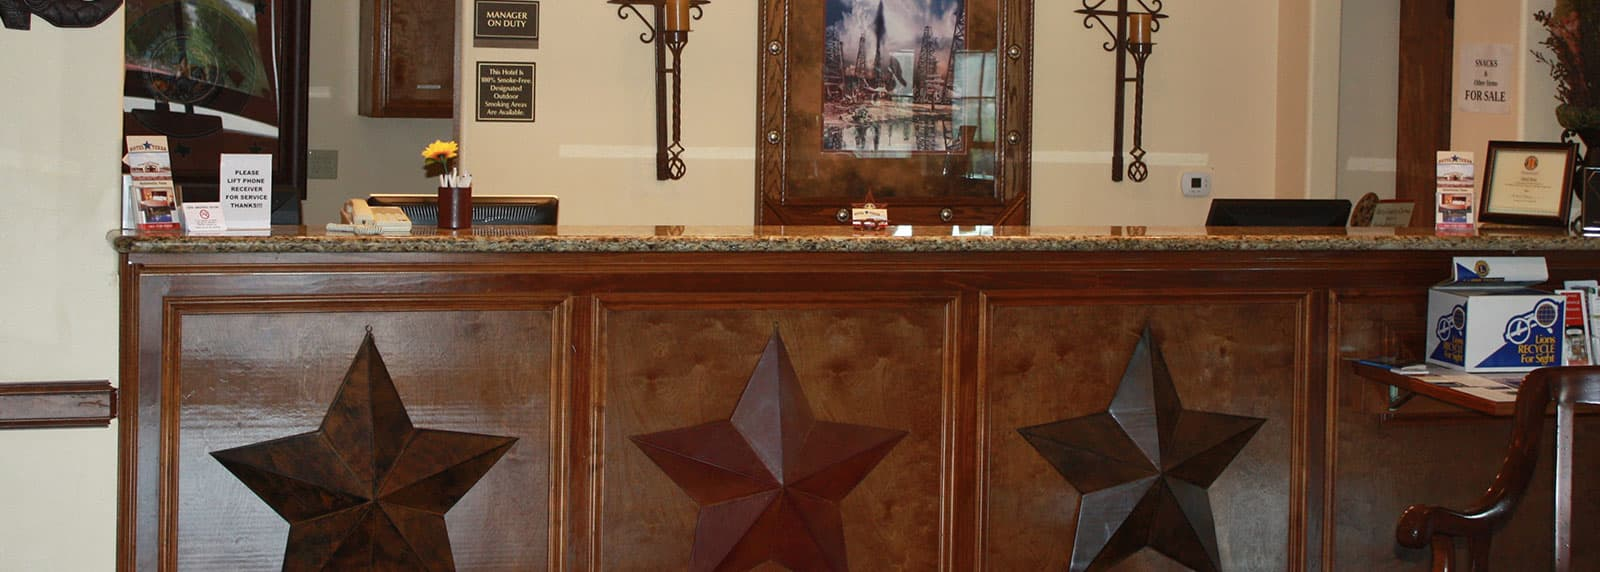 Amenities of Hotel Texas Hallettsville